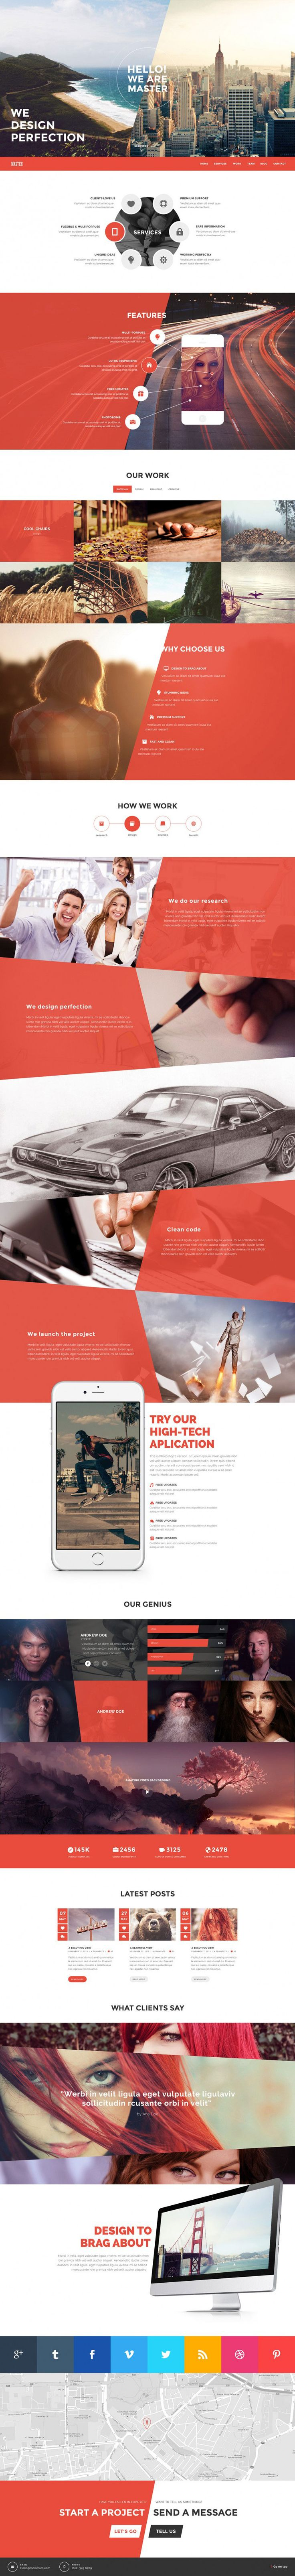 Here's 20 creative website design inspiration 2016 for web designers. These designs are not just creative but elegant too. Featuring these creative website design inspiration 2016 will be cool to...